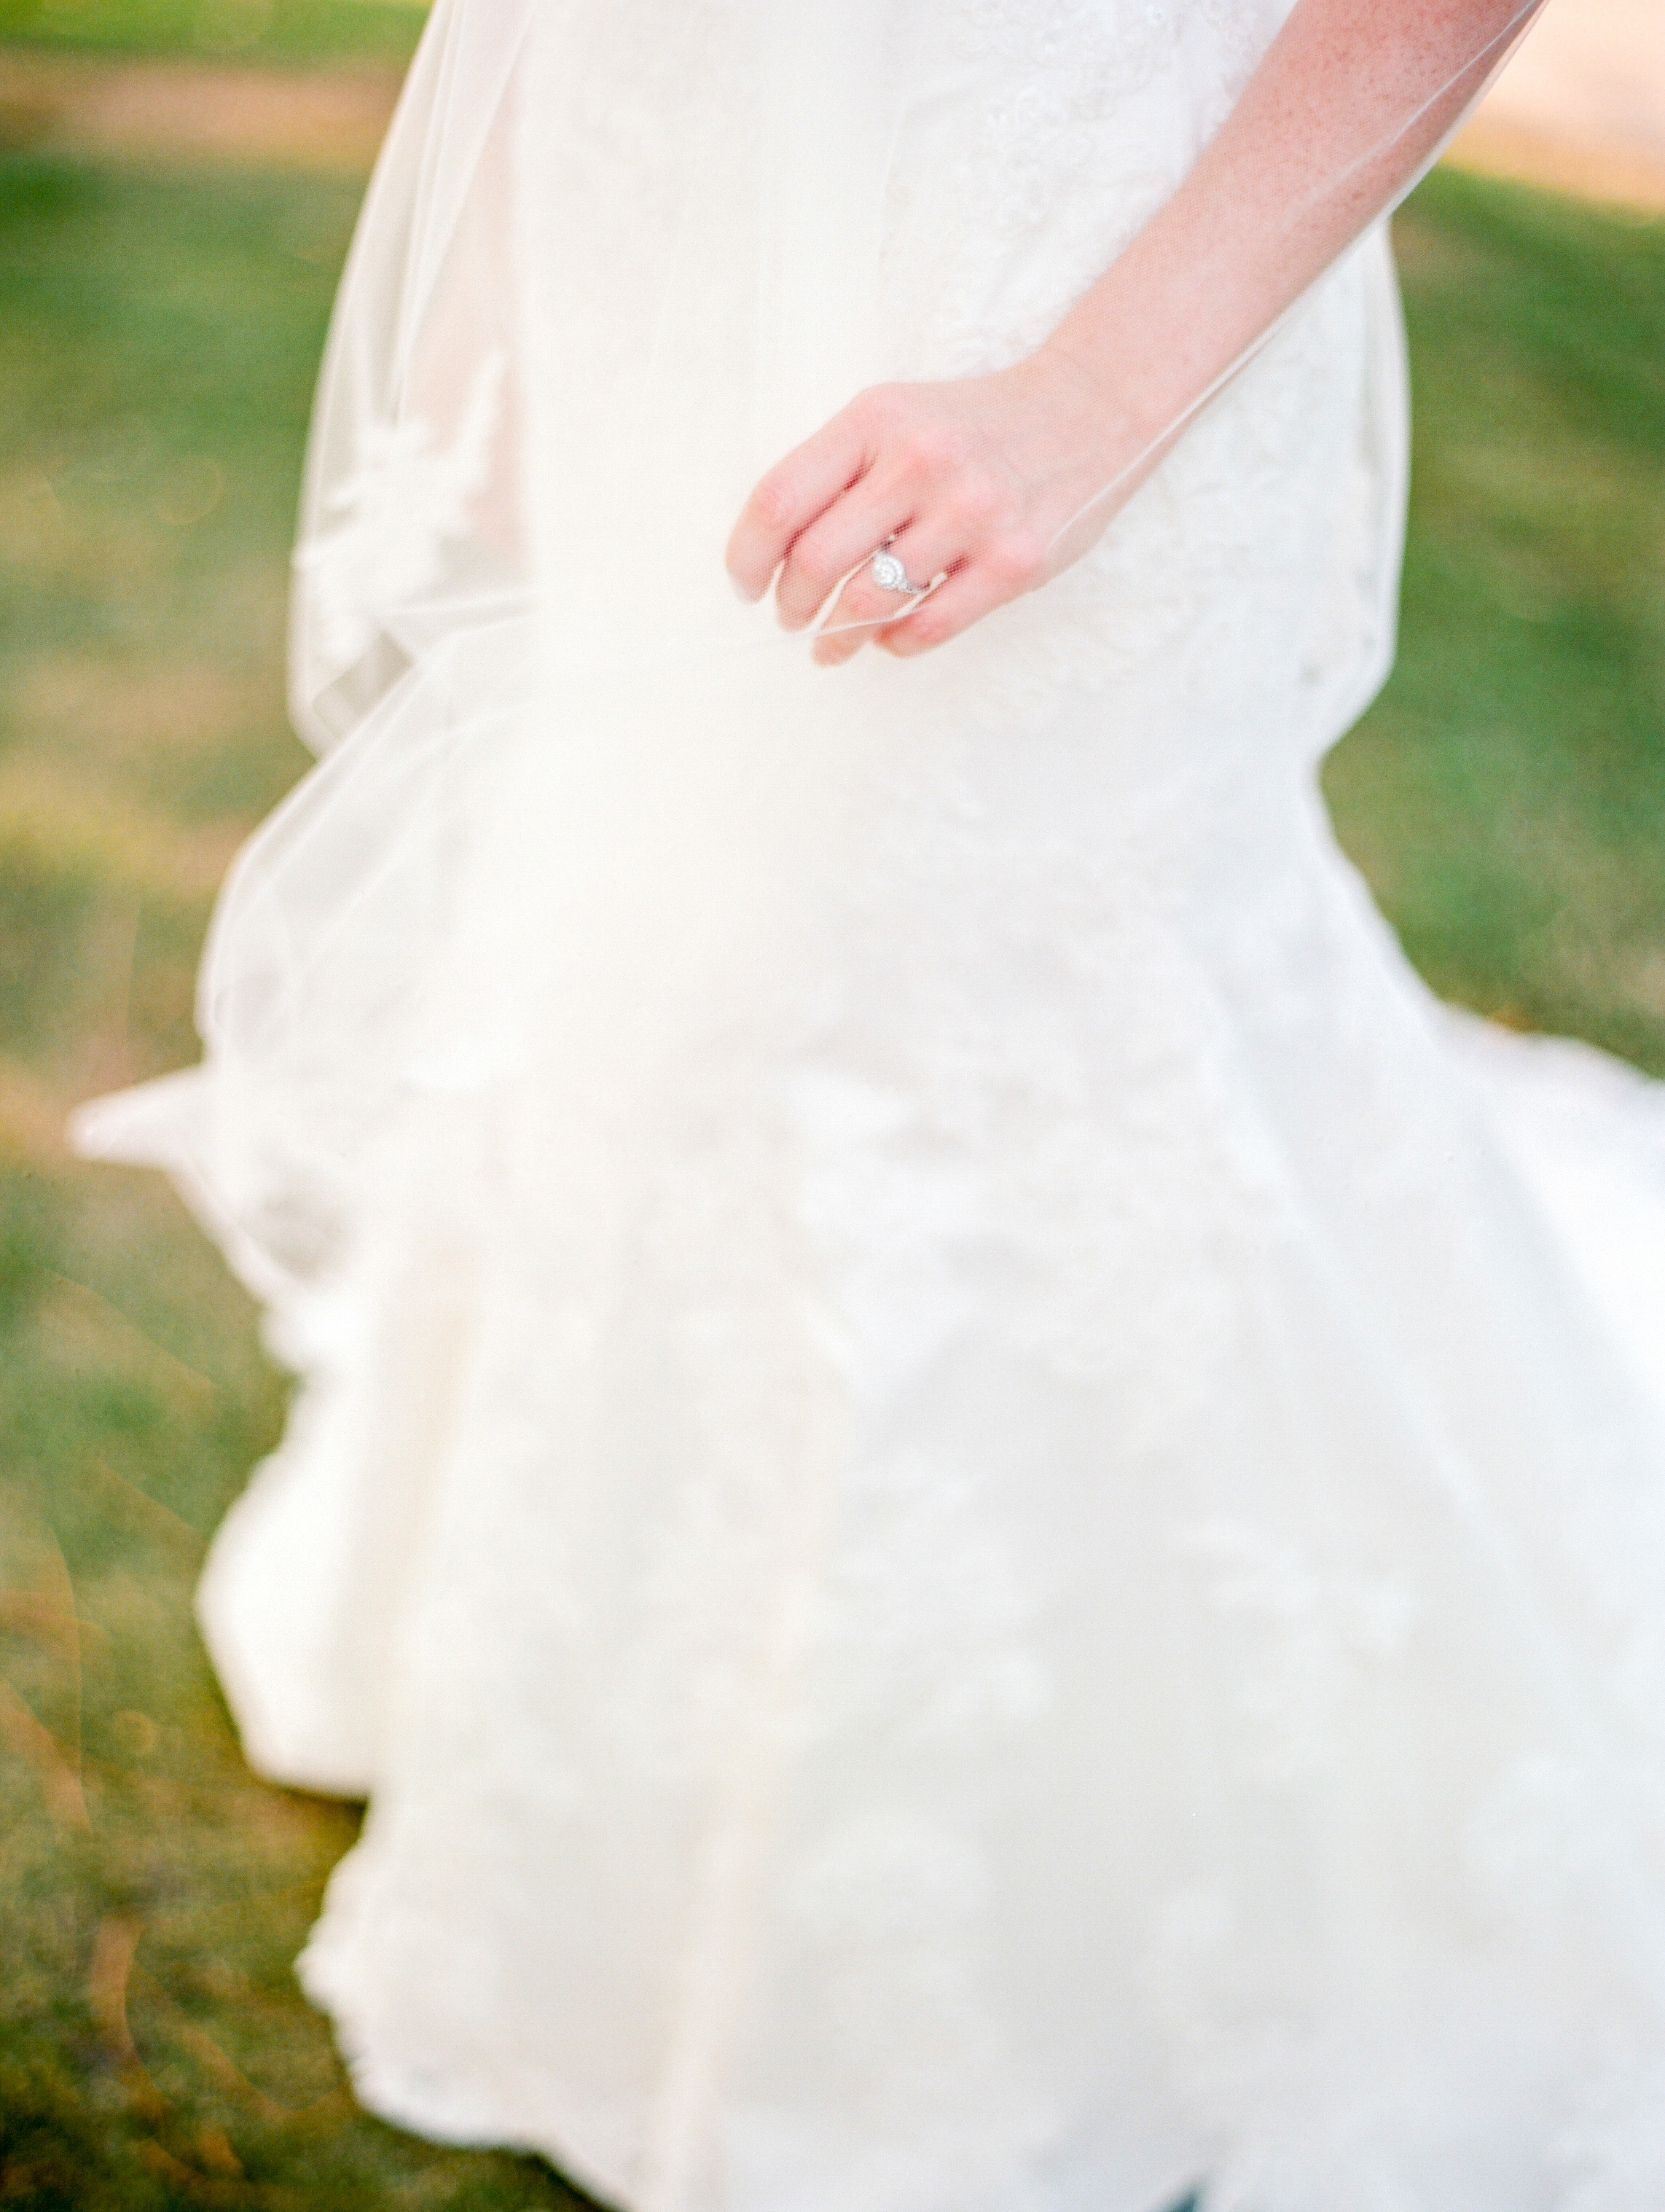 Dana-Fernandez-Photography-Film-Wedding-Photography-Houston-Bridals-Houston-Country-Club-Photographer-8.jpg